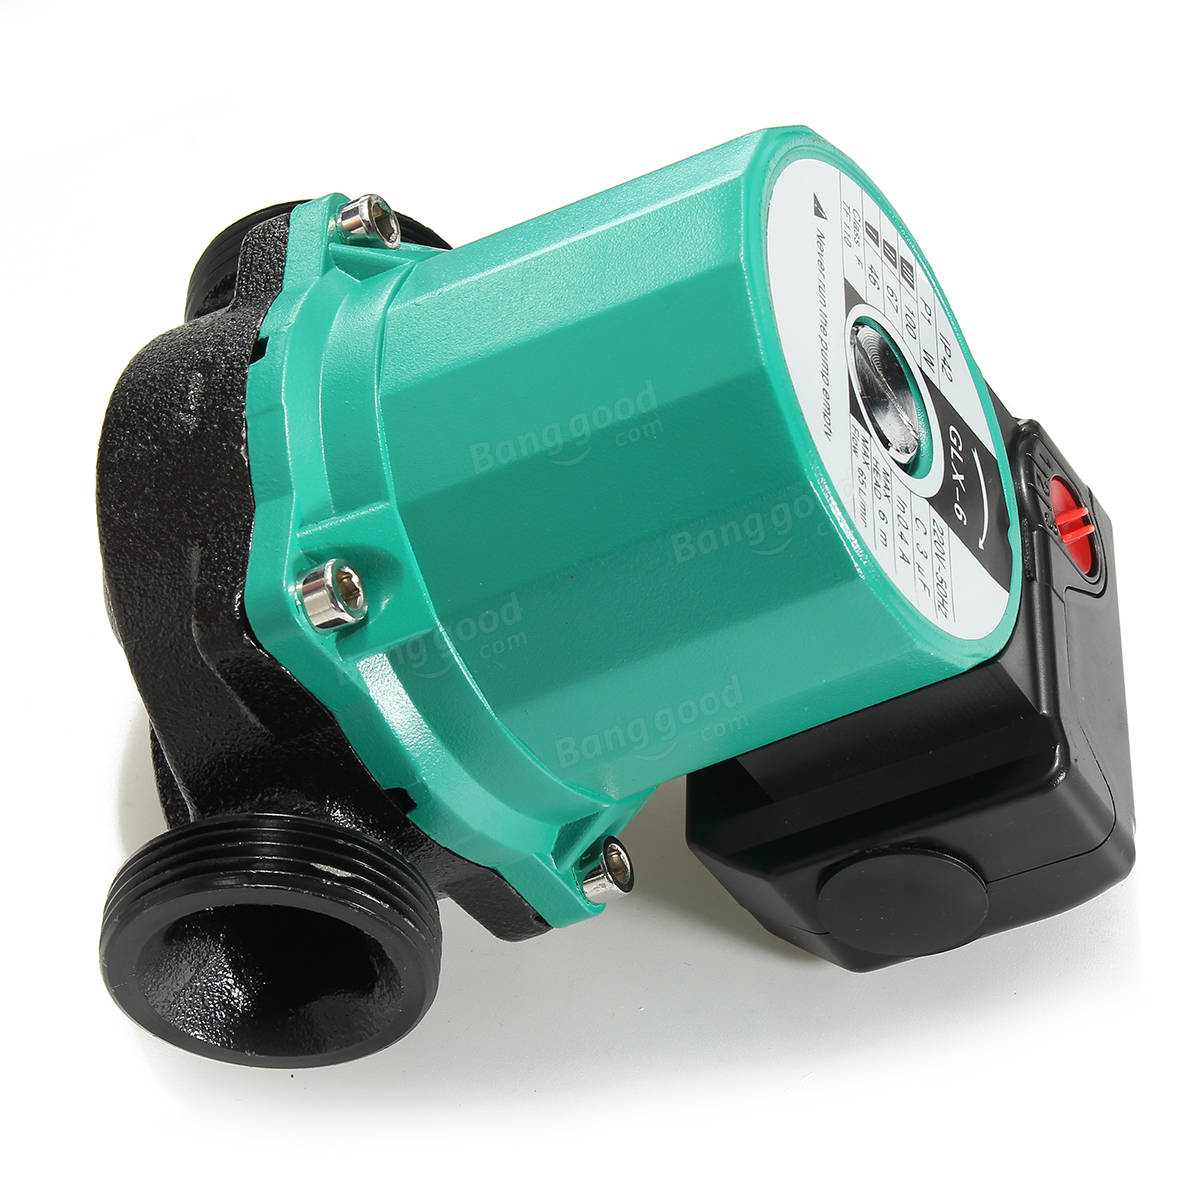 New 3 Speed 220V 100W Central Heating Circulator Pump Hot Water ...